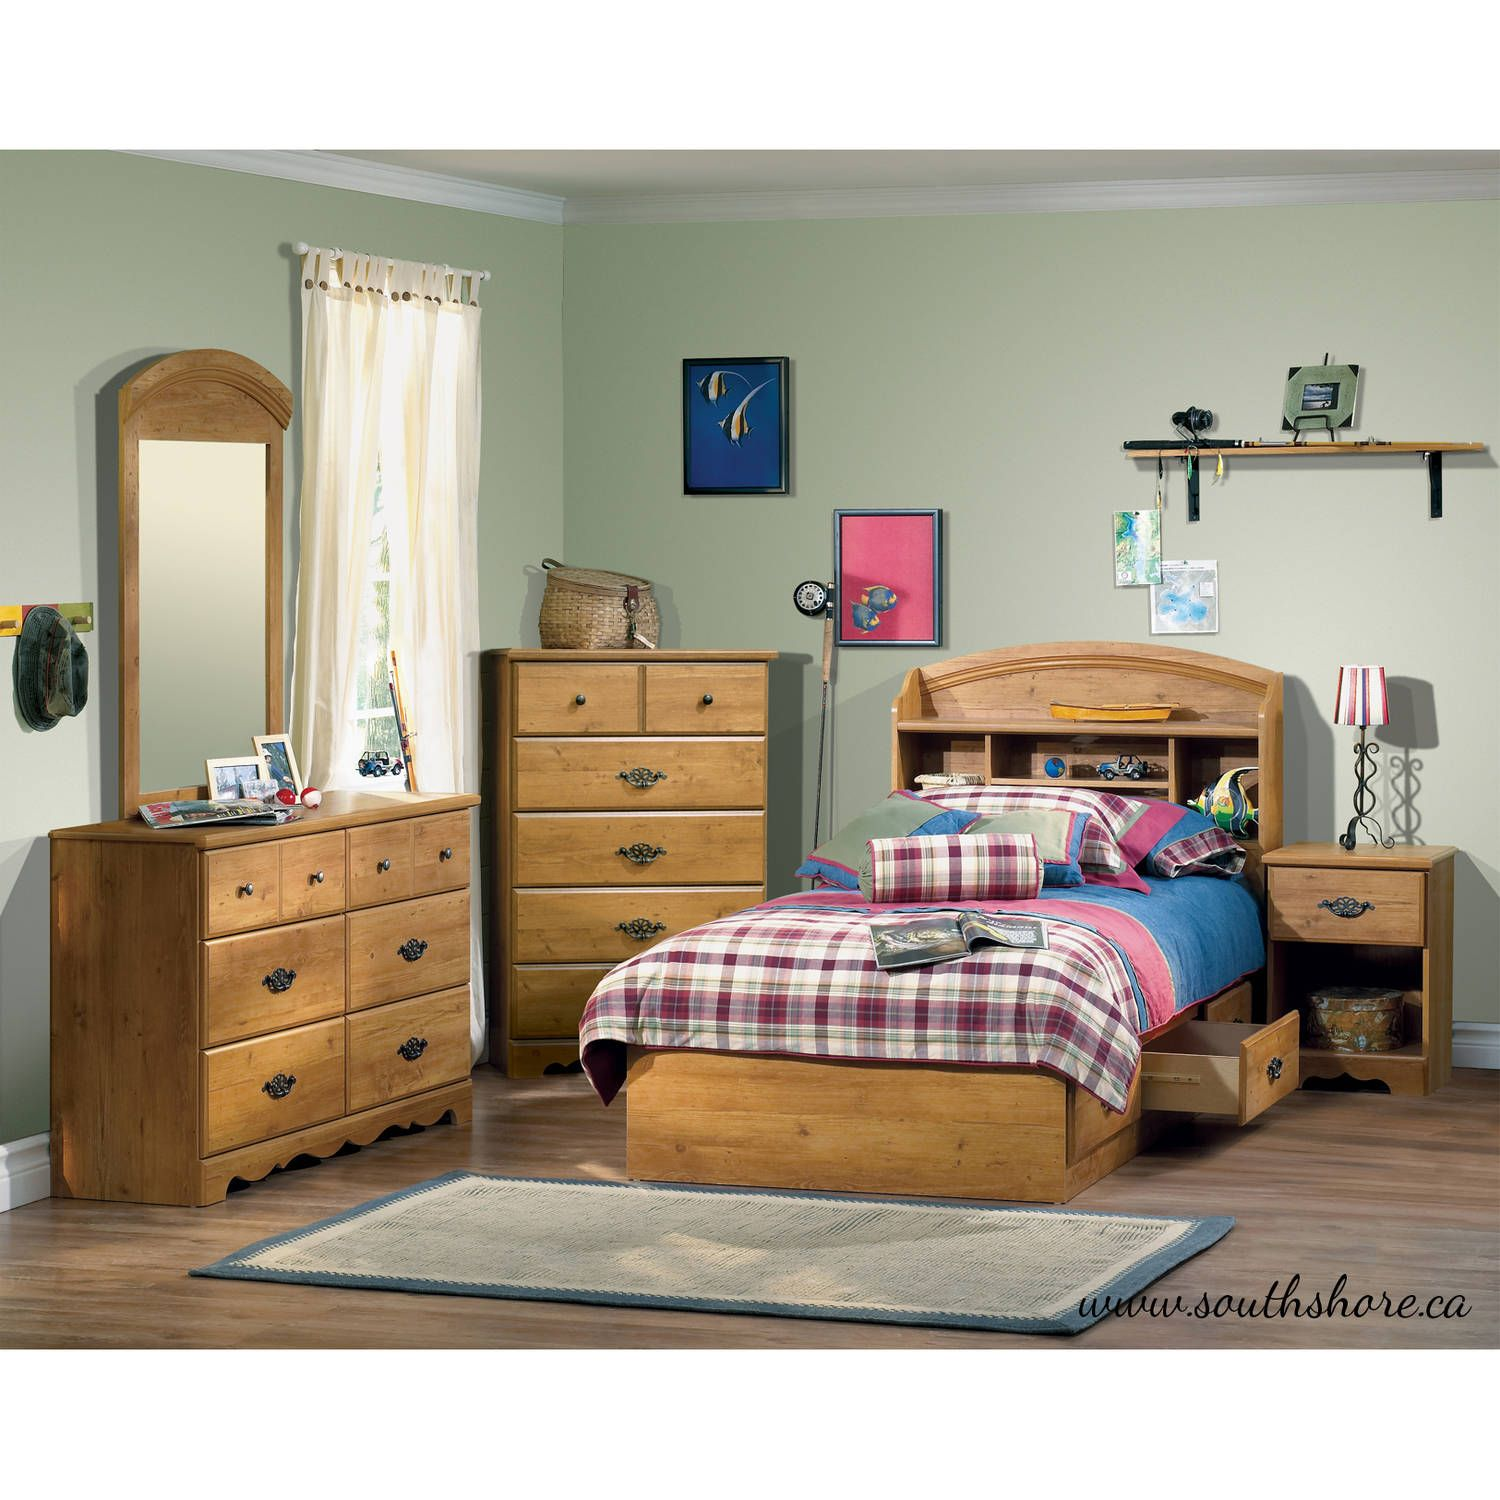 Stunning Youth Bedroom Sets Cool Kidsu5 Furniture - Walmart.com